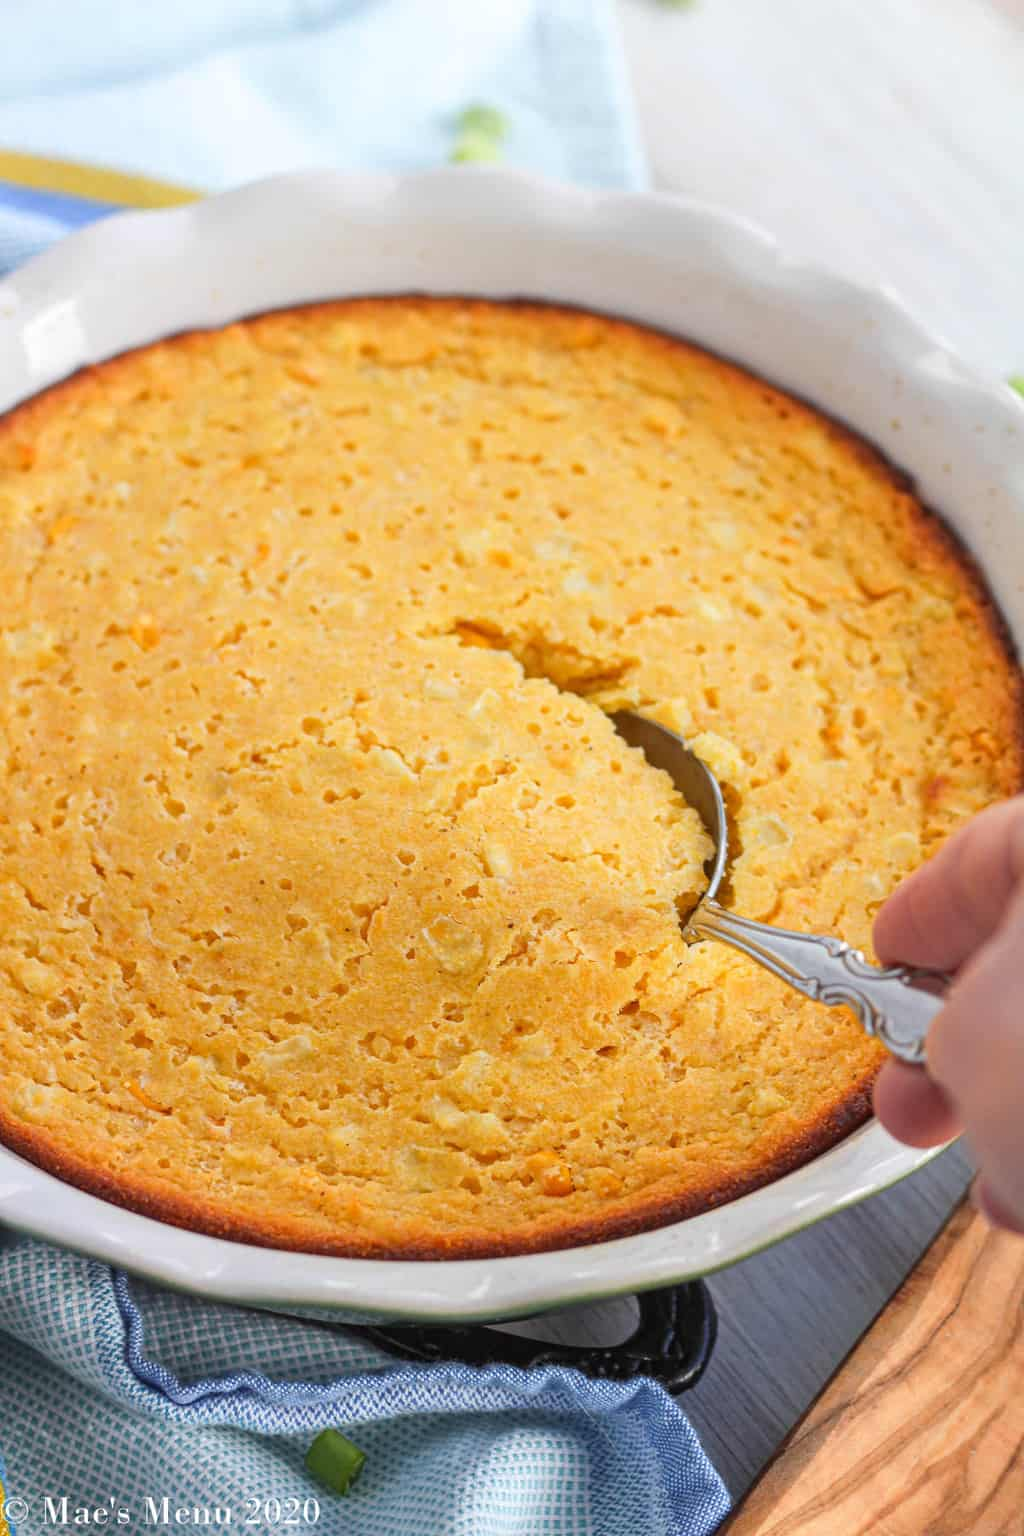 Taking a scoop out of the dish of corn souffle